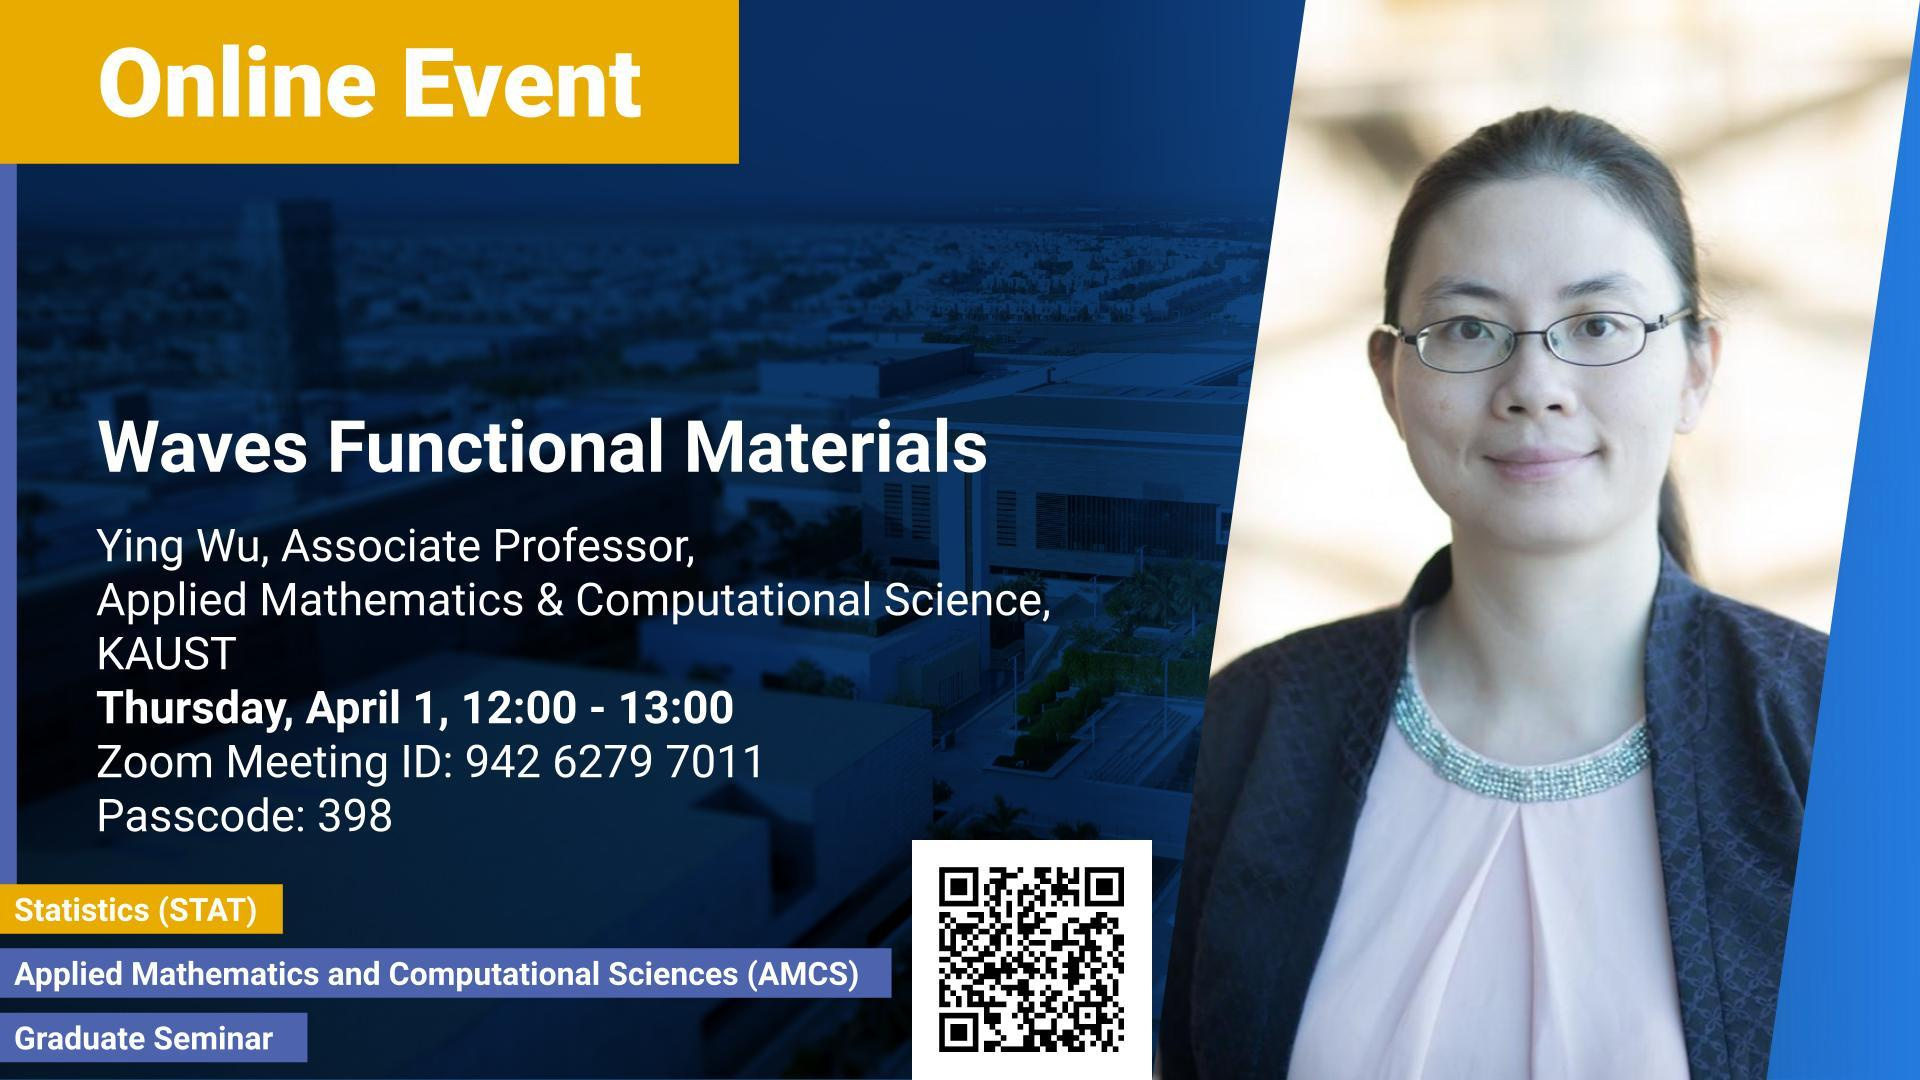 KAUST CEMSE AMCS STAT Graduate Seminar Ying Wu Waves Funtional Materials